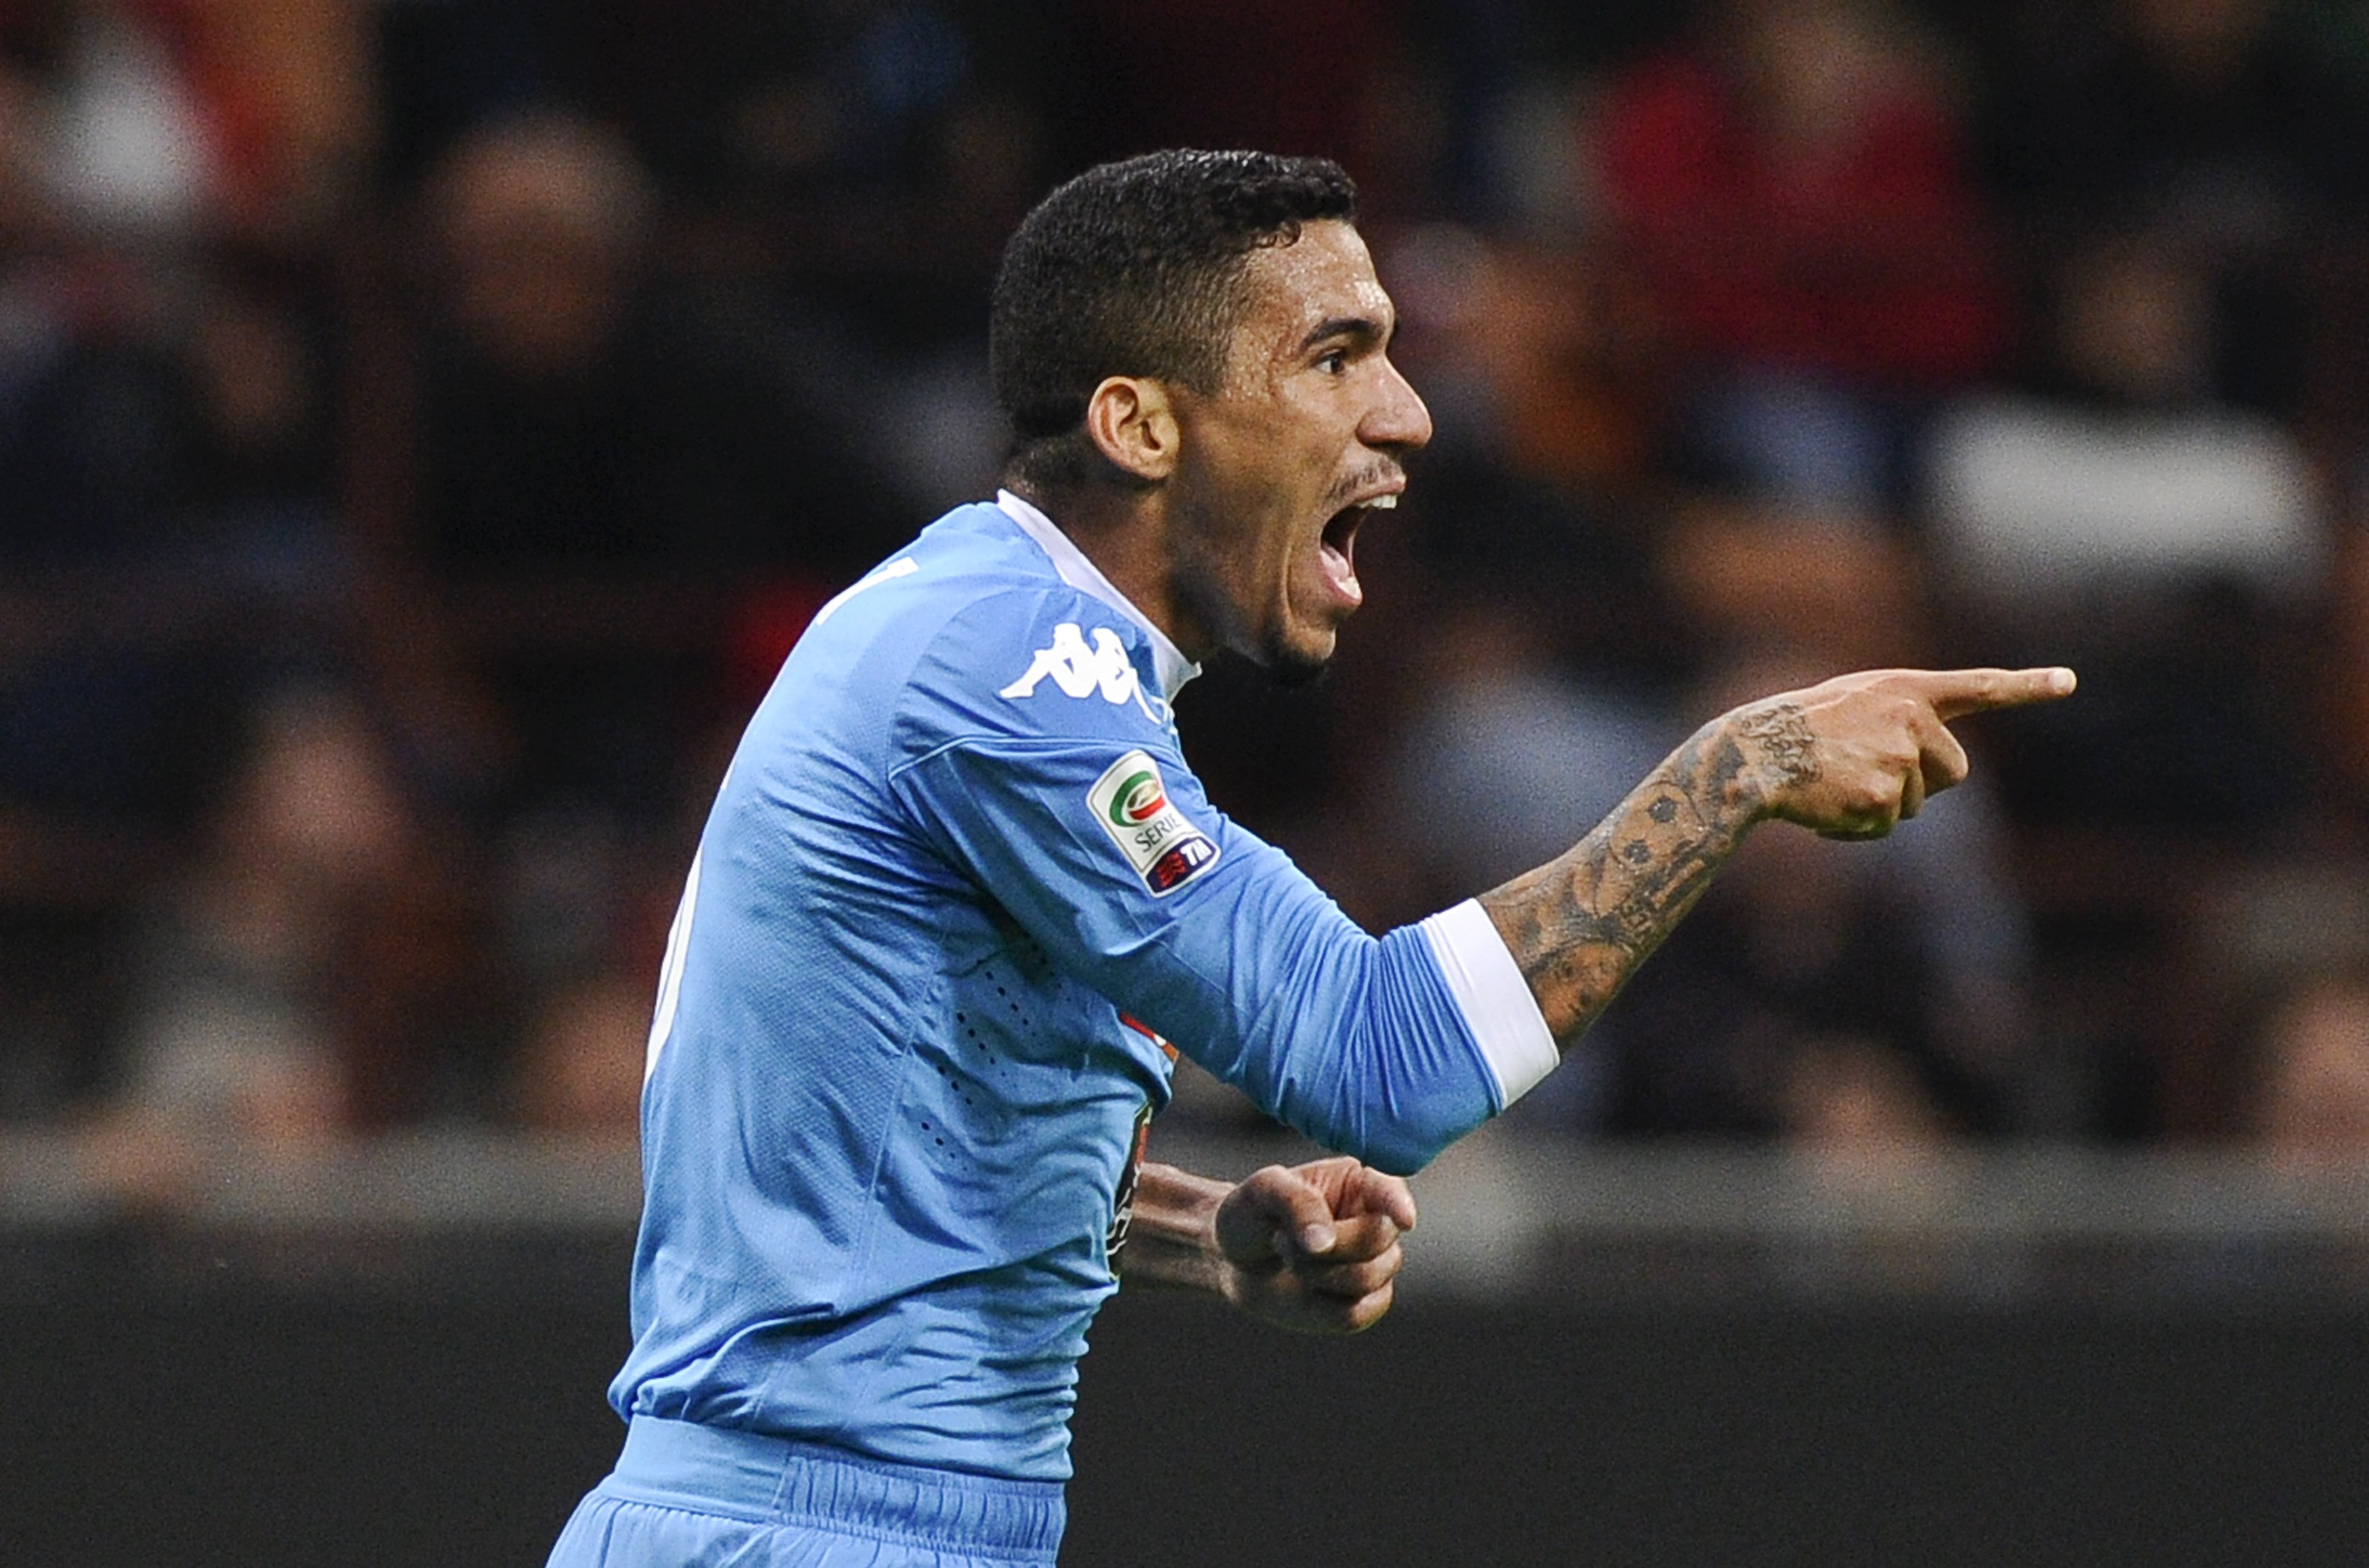 Napoli's Allan celebrates after scoring against AC Milan during their Italian Serie A soccer match at the San Siro stadium in Milan